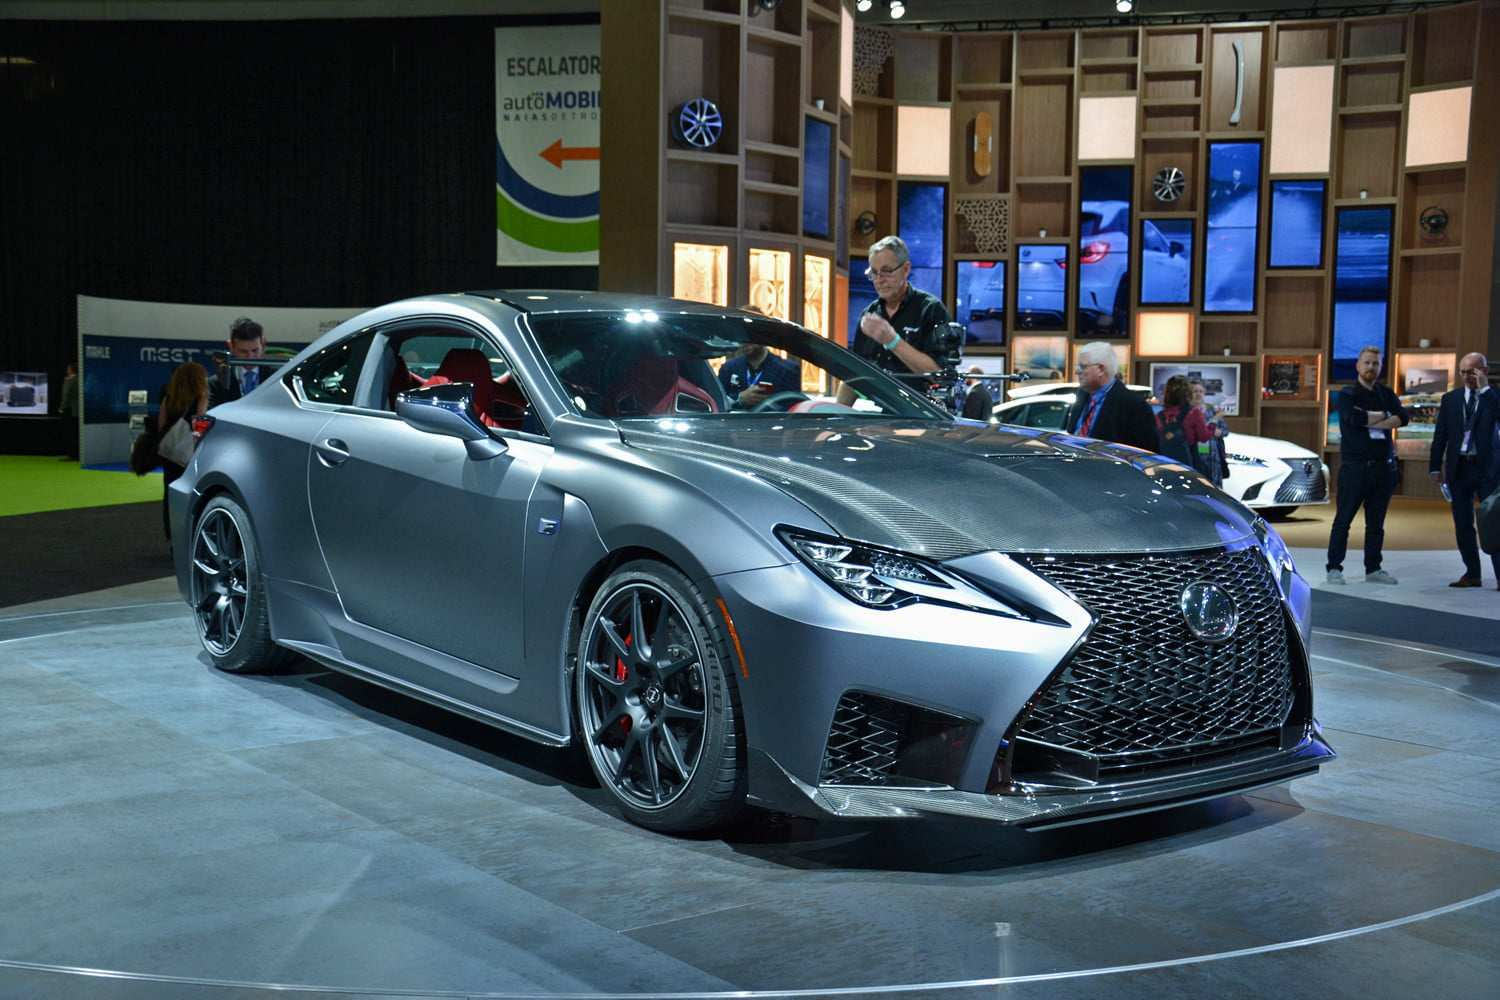 94 Gallery of 2020 Lexus Rcf Engine with 2020 Lexus Rcf